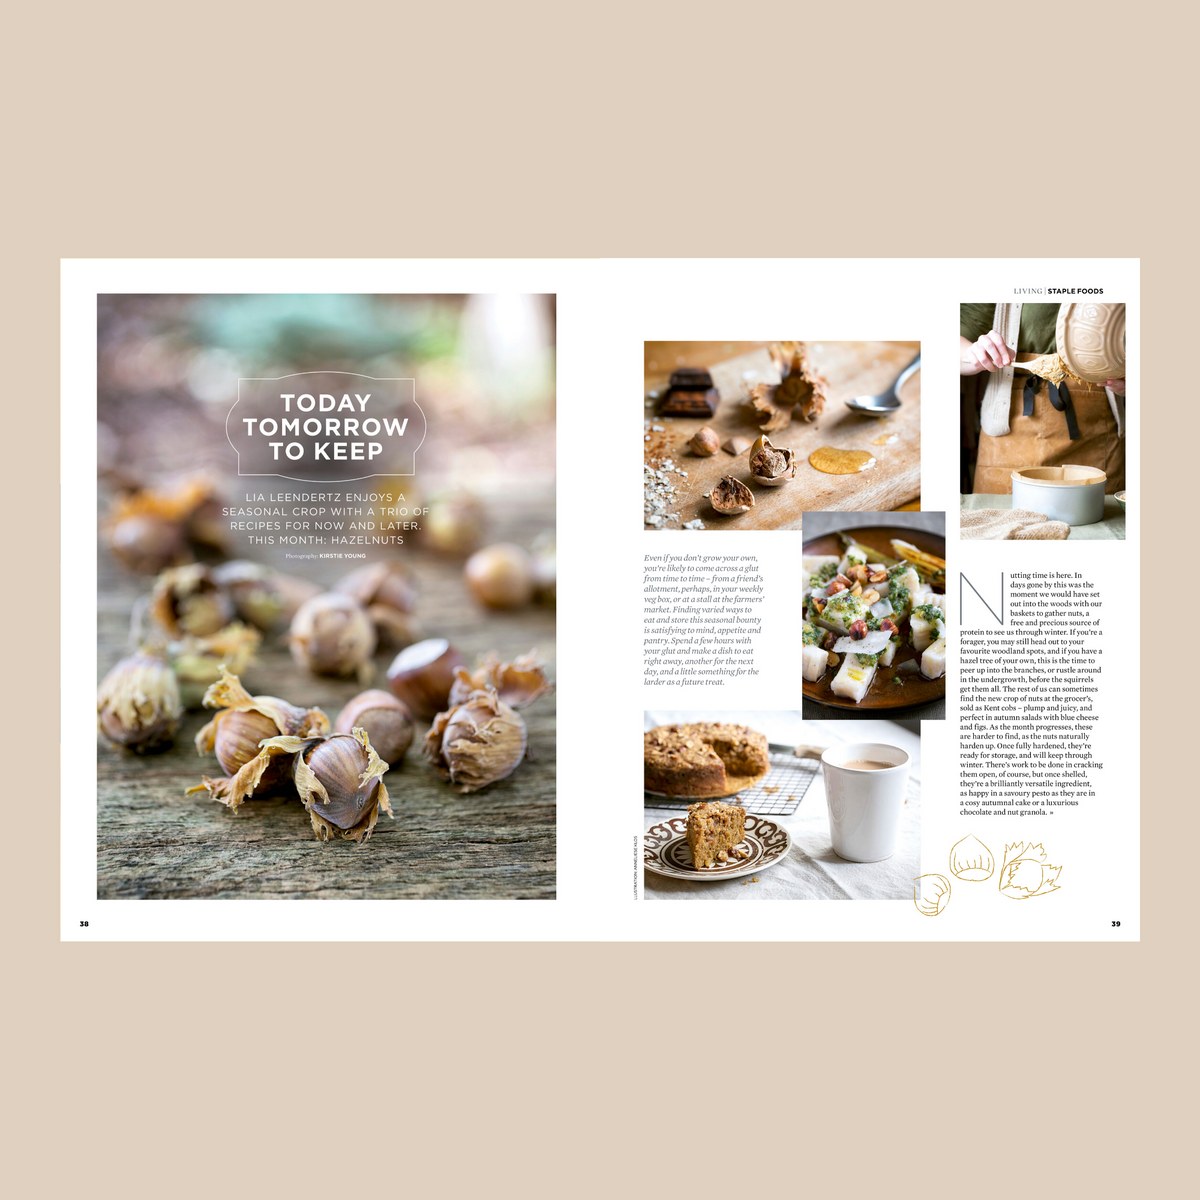 The Simple Things Issue 76 October